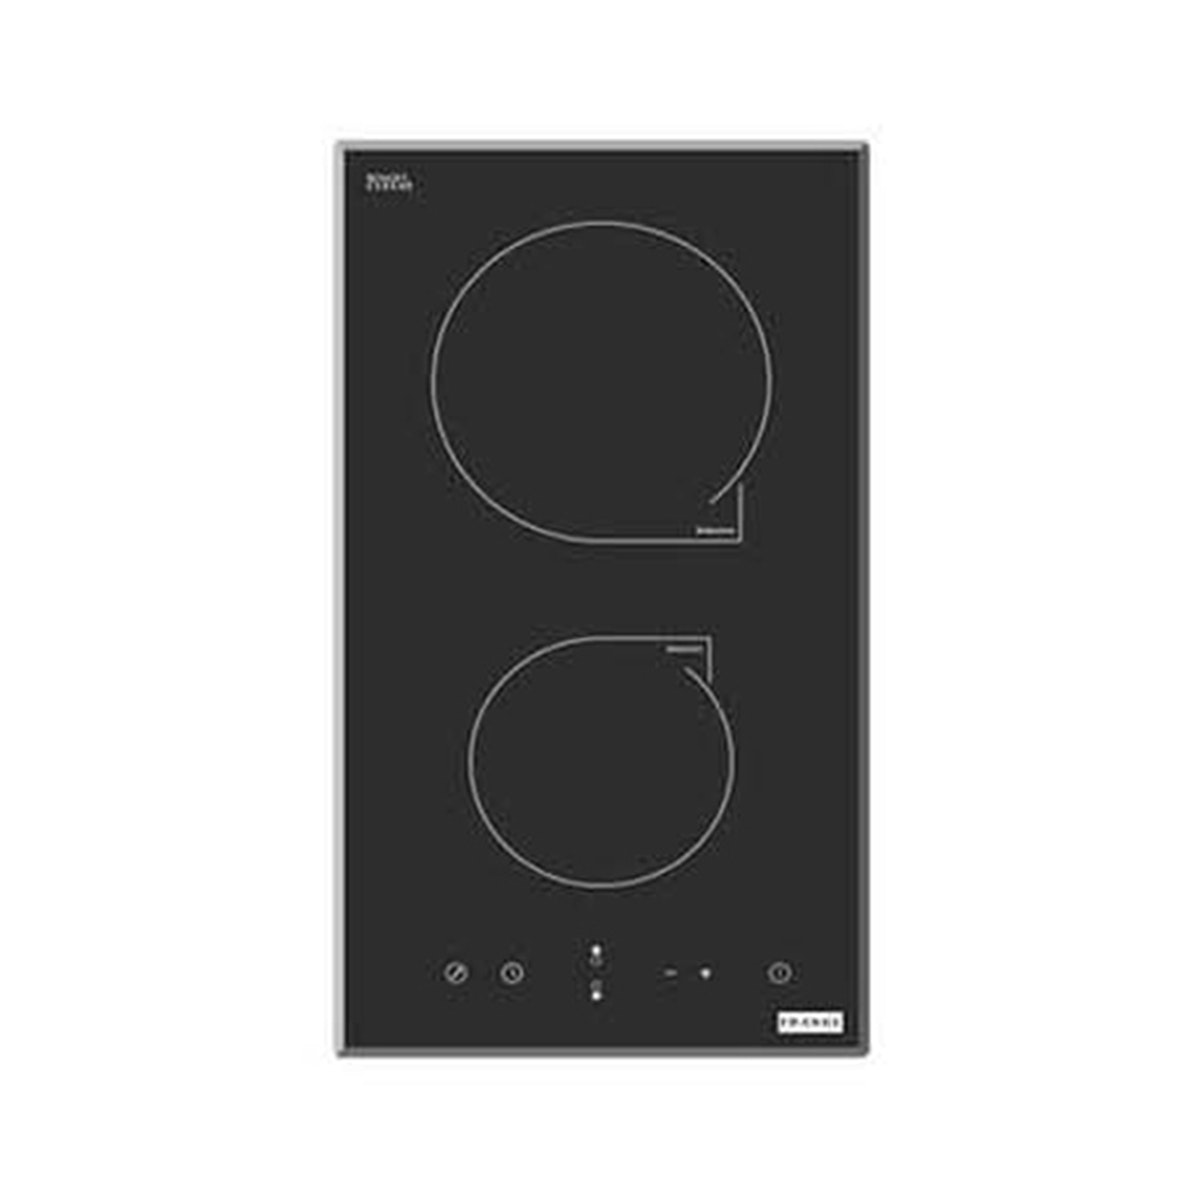 FRANKE Induction Hob 2 Burners FHD351 302I T